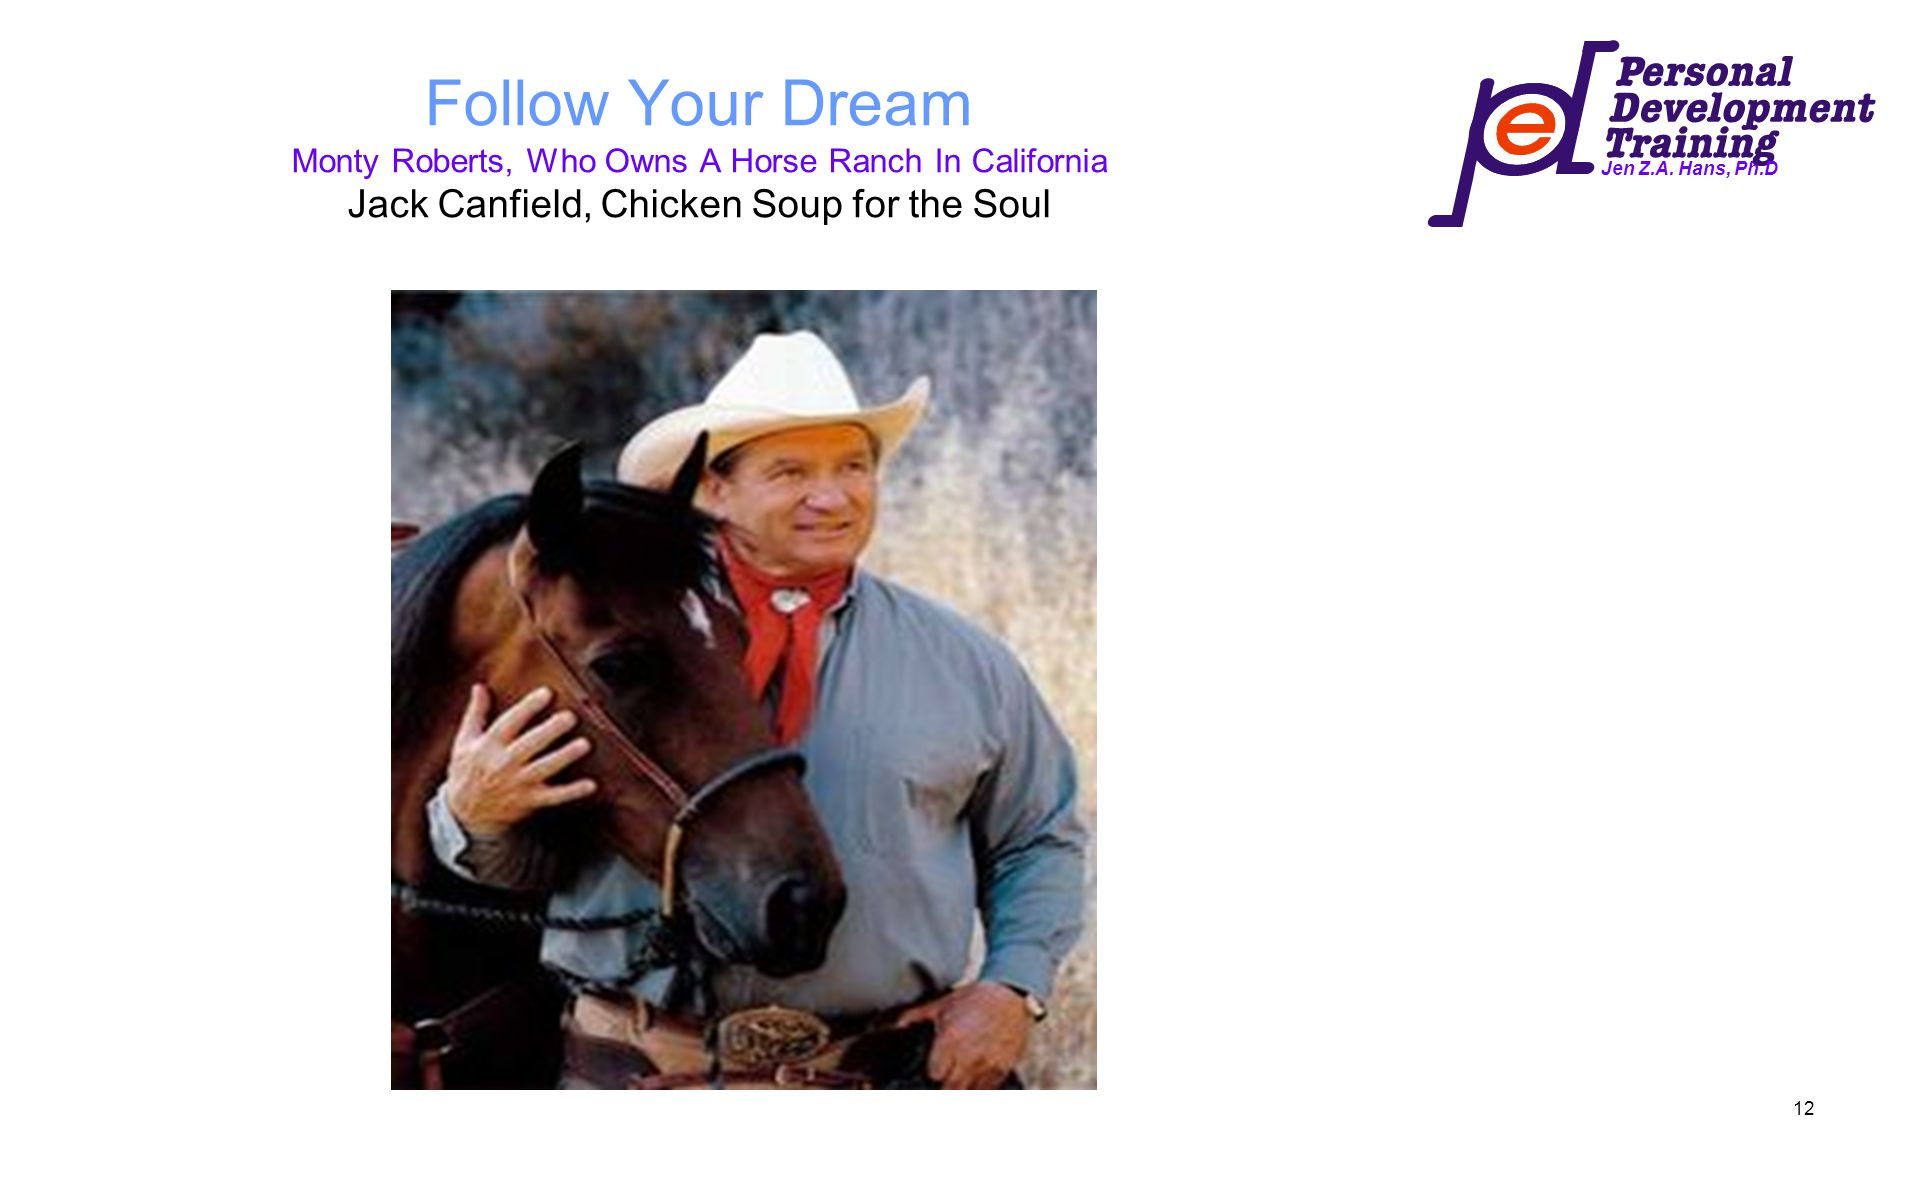 Follow Your Dream Monty Roberts, Who Owns A Horse Ranch In California Jack Canfield, Chicken Soup for the Soul